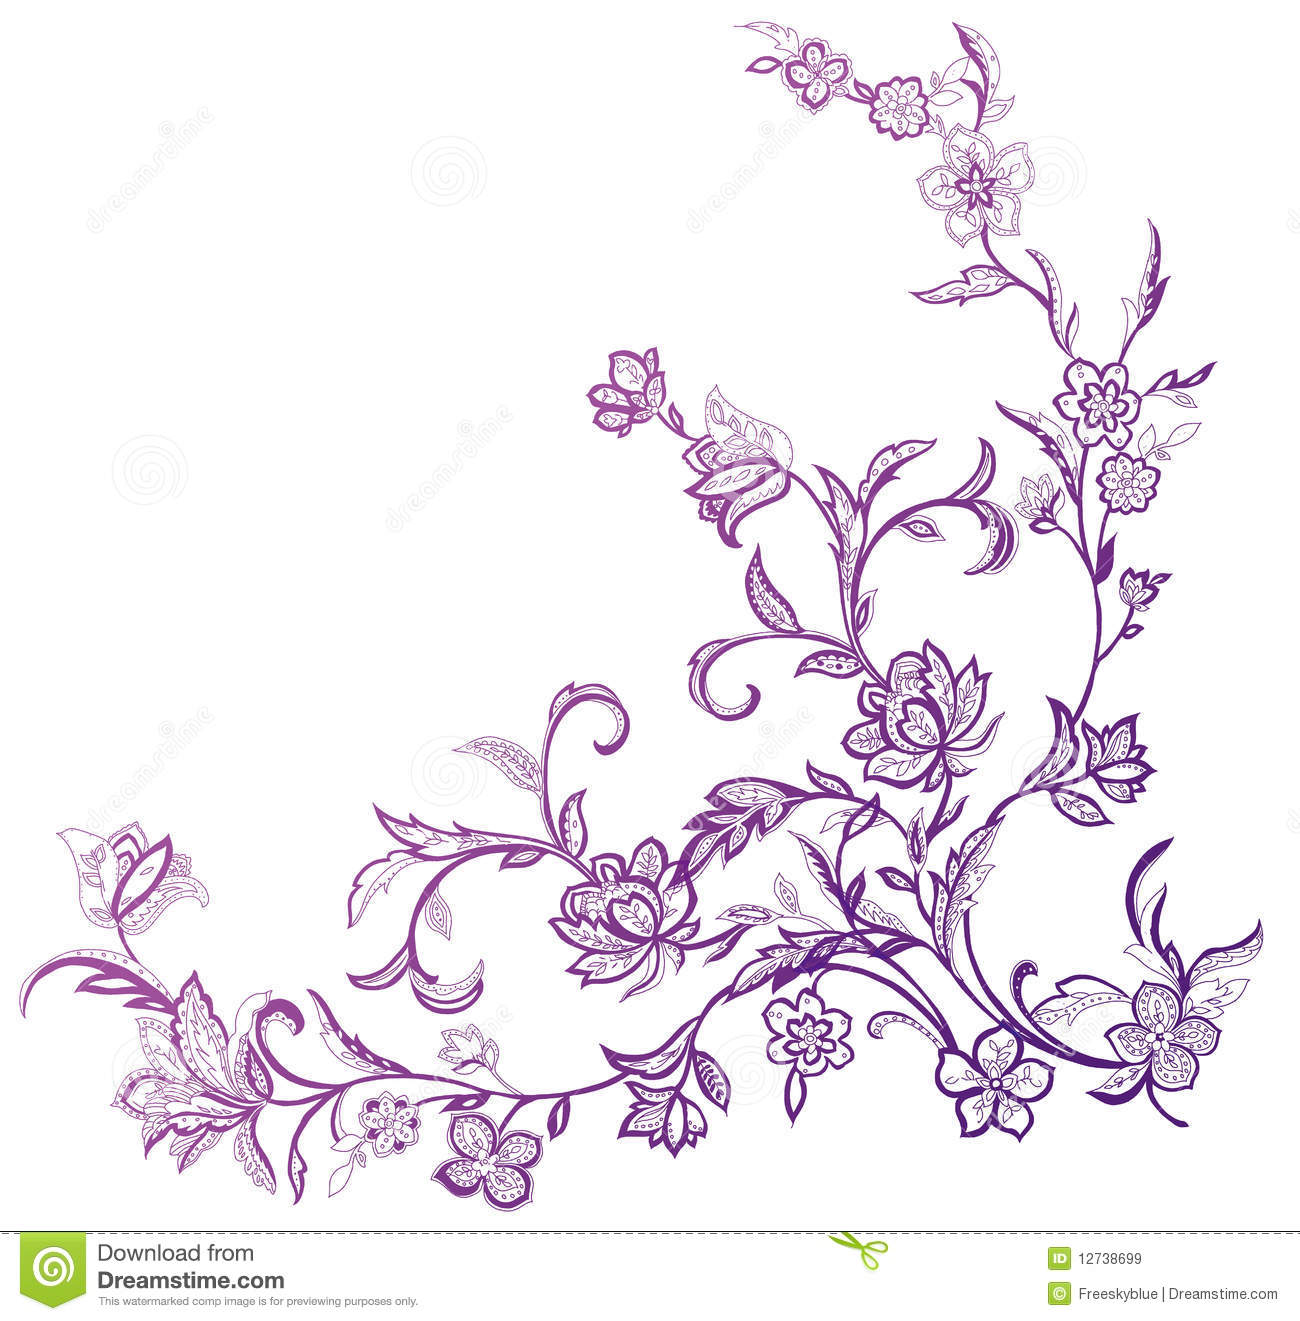 Black Flower And Vines Pattern Royalty Free Stock Image: Flower And Vines Pattern Royalty Free Stock Images